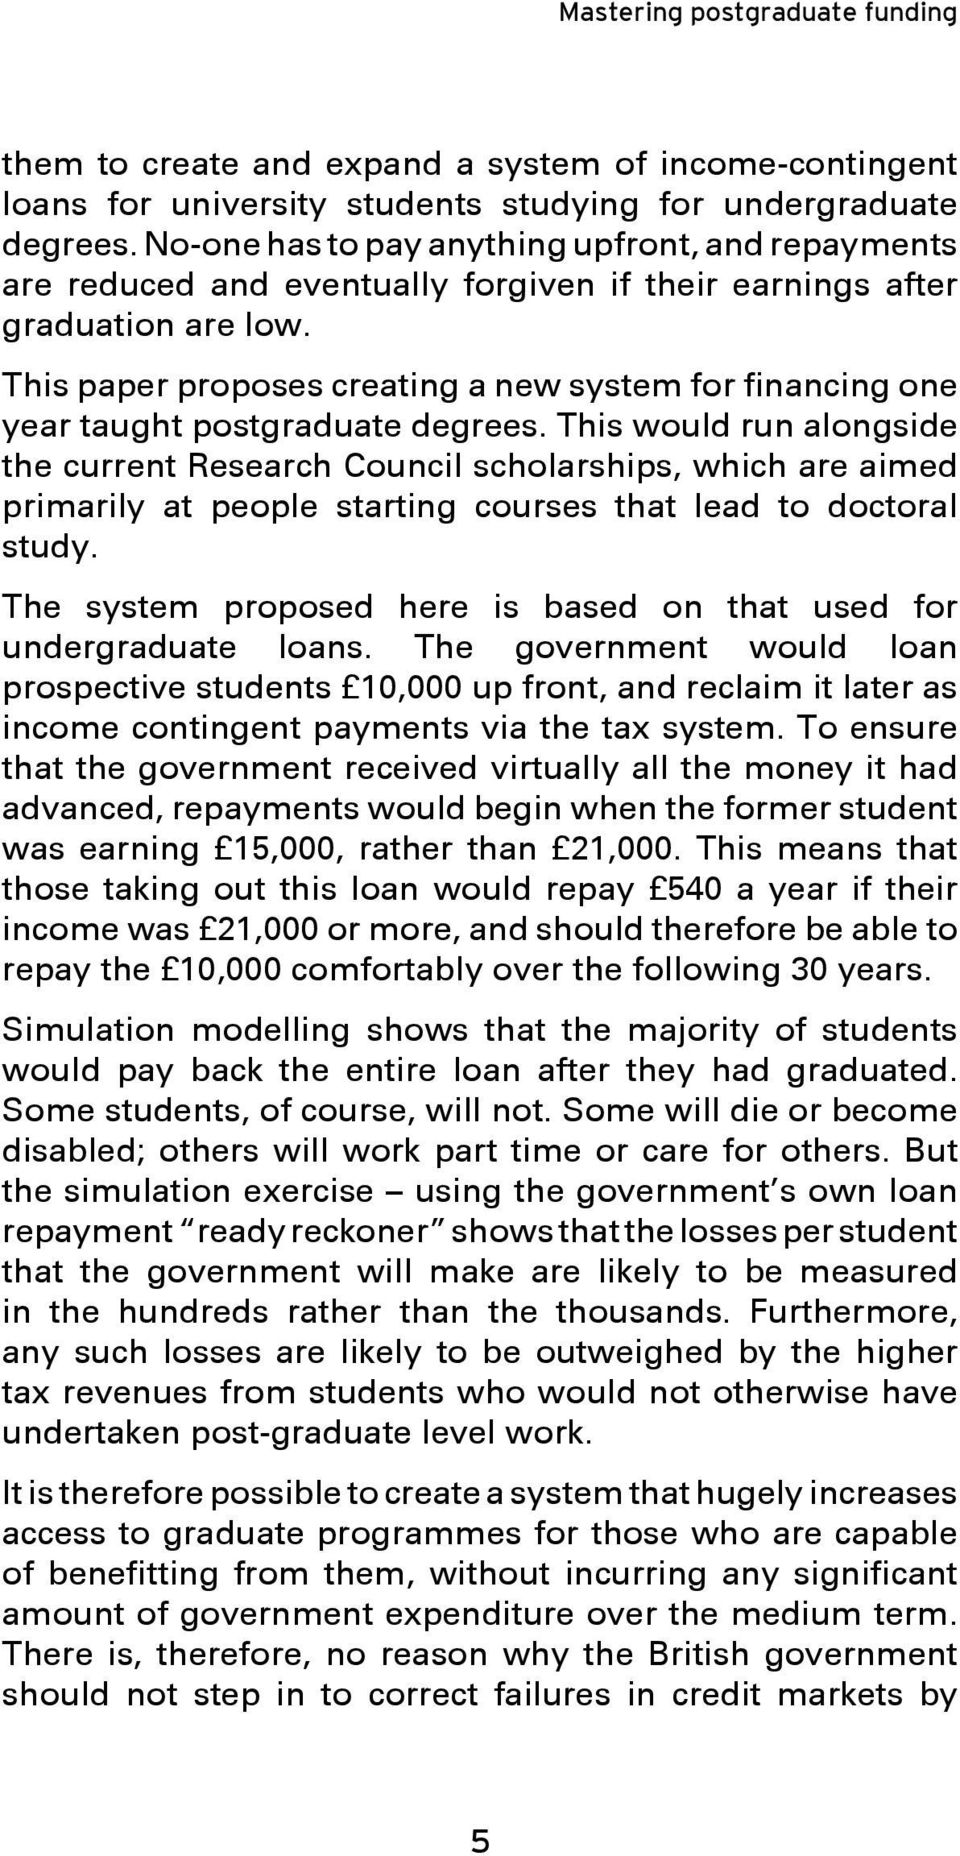 This paper proposes creating a new system for financing one year taught postgraduate degrees.